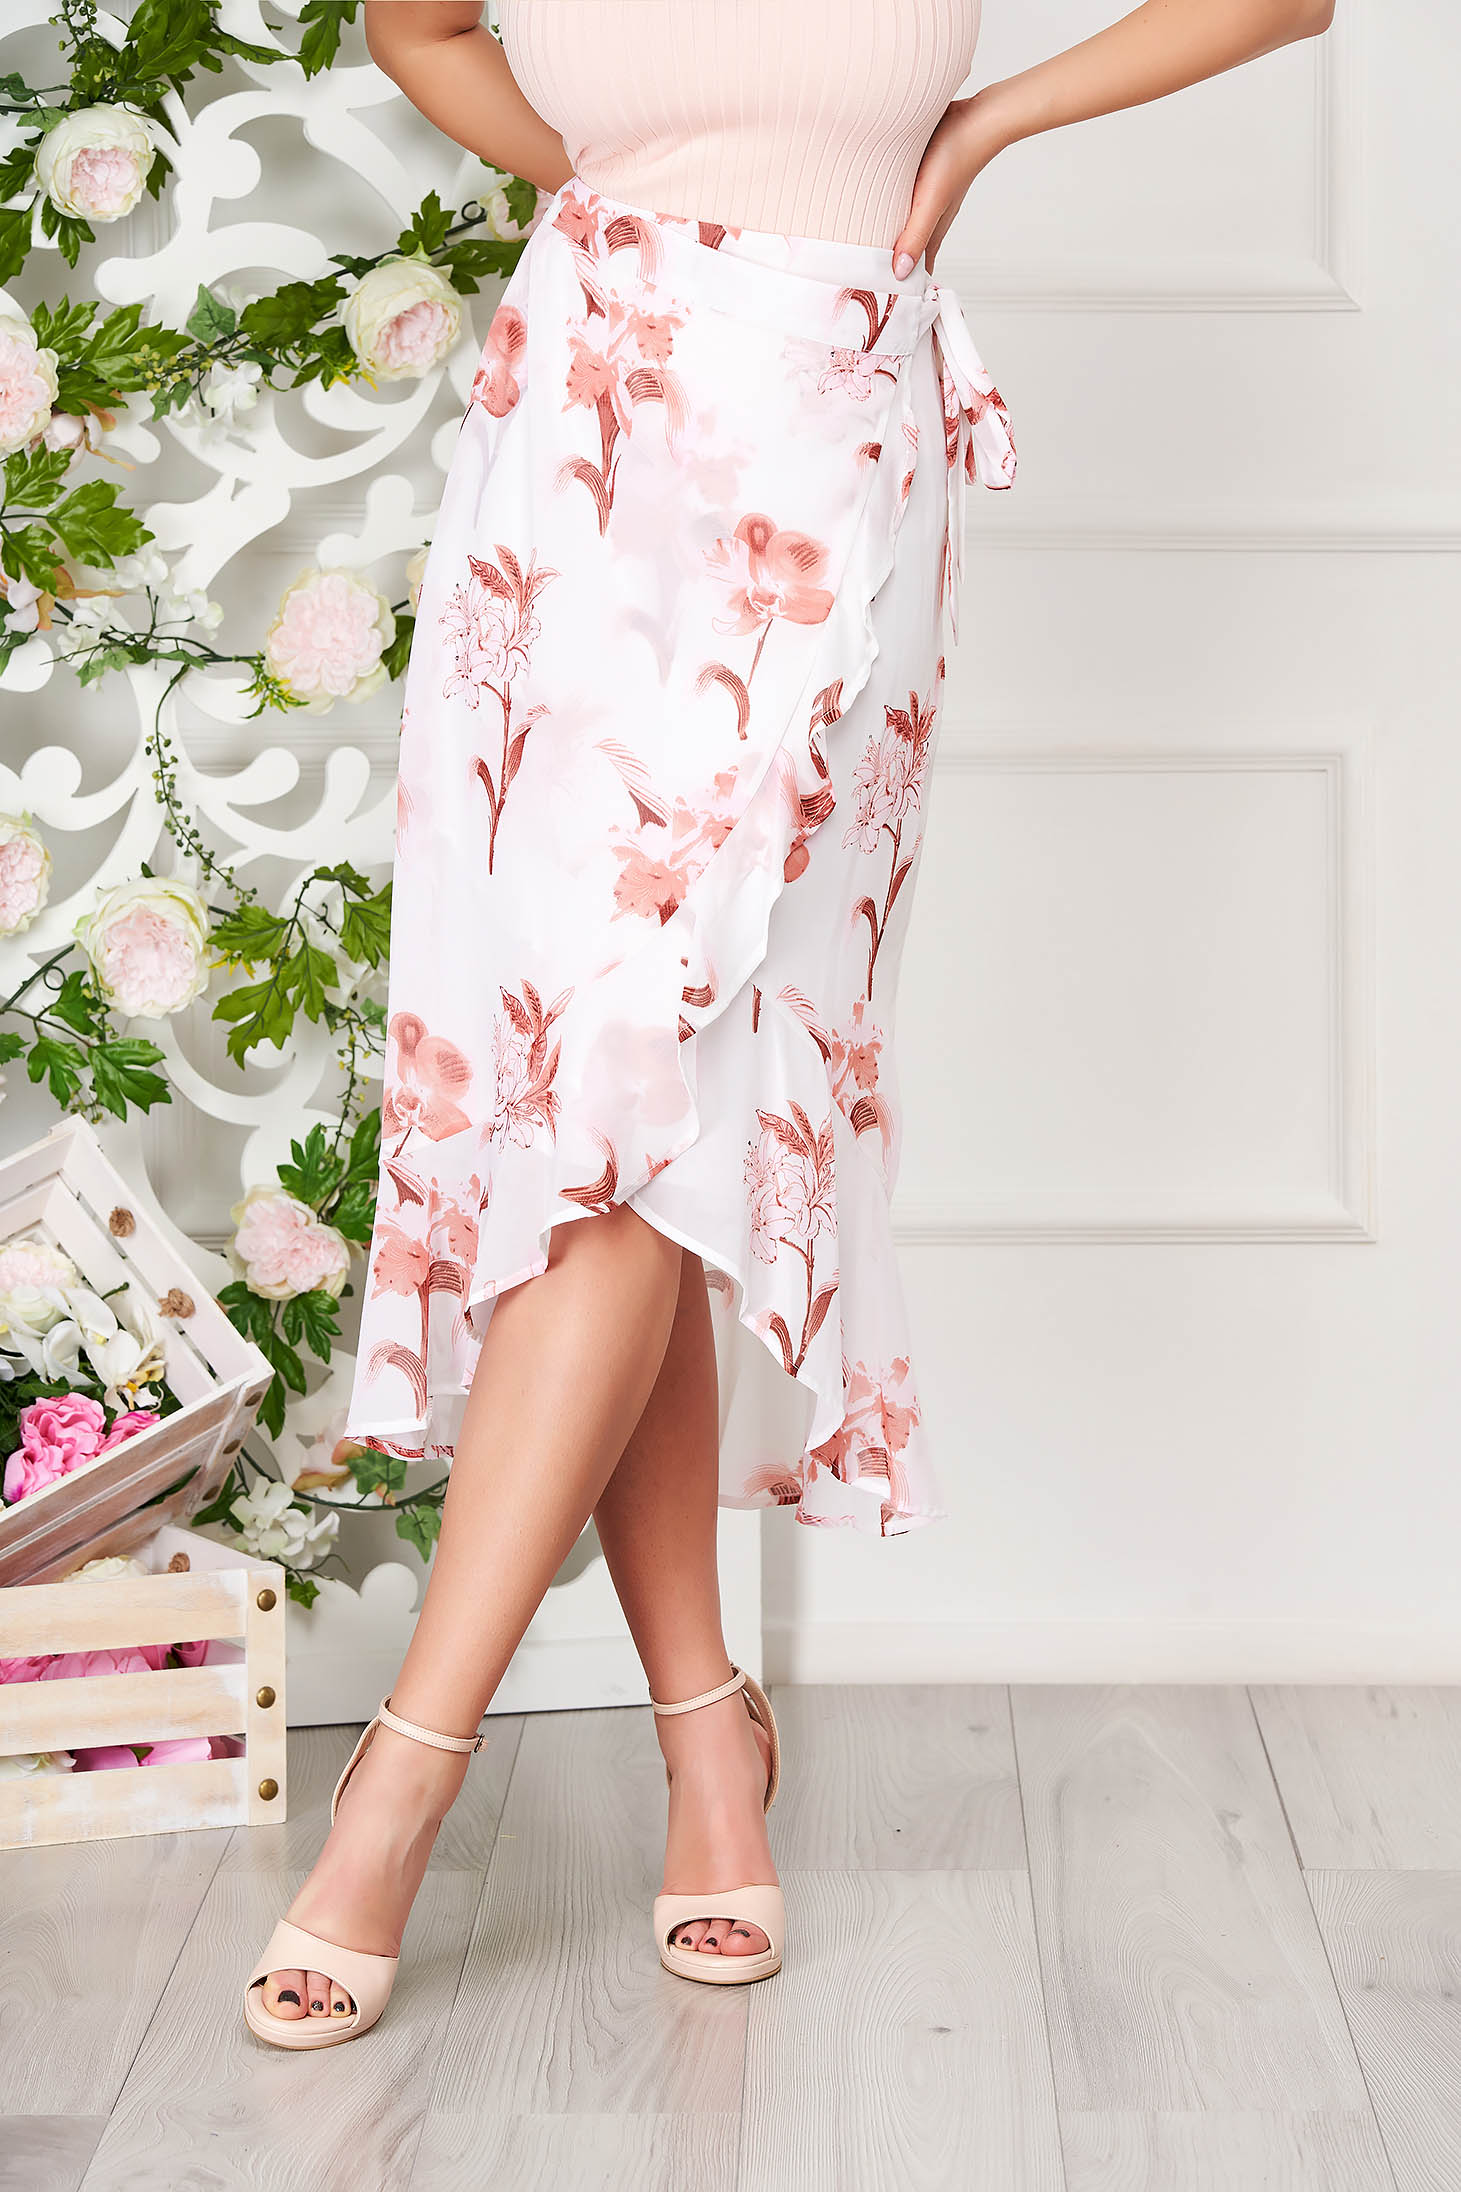 White skirt casual midi asymmetrical from veil fabric wrap over skirt with floral print